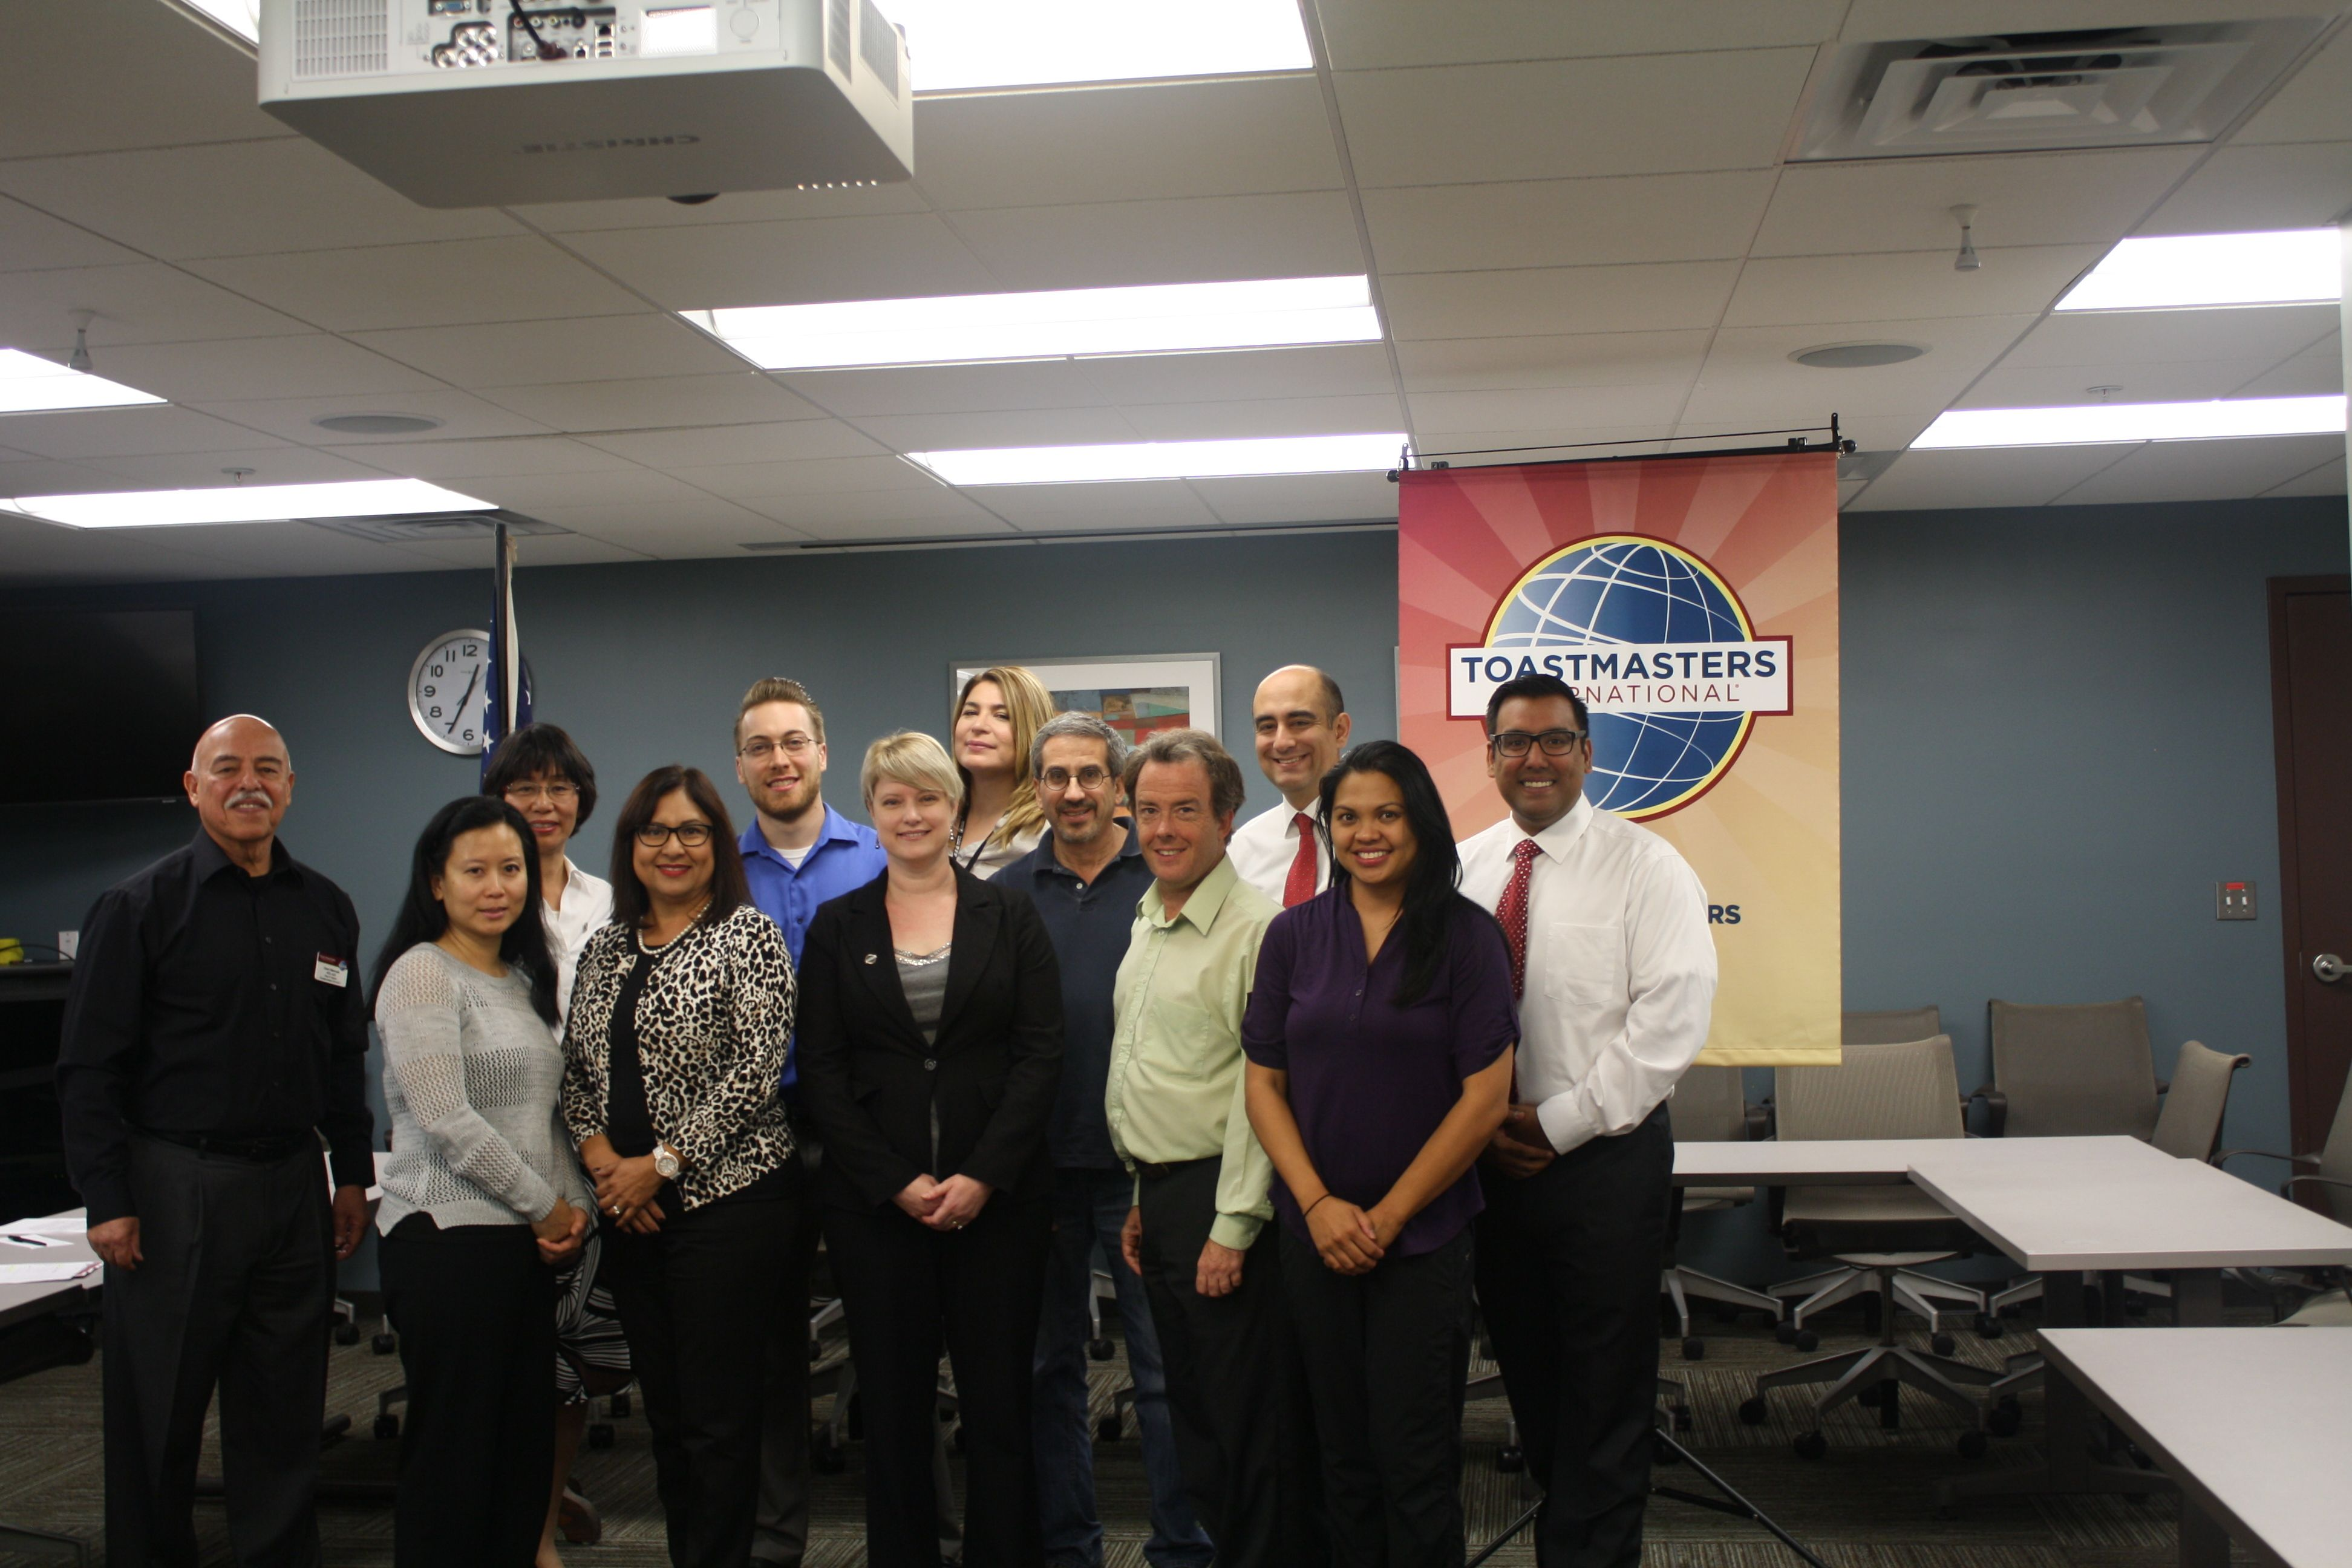 Toastmasters District 100 - San Gabriel Mountains